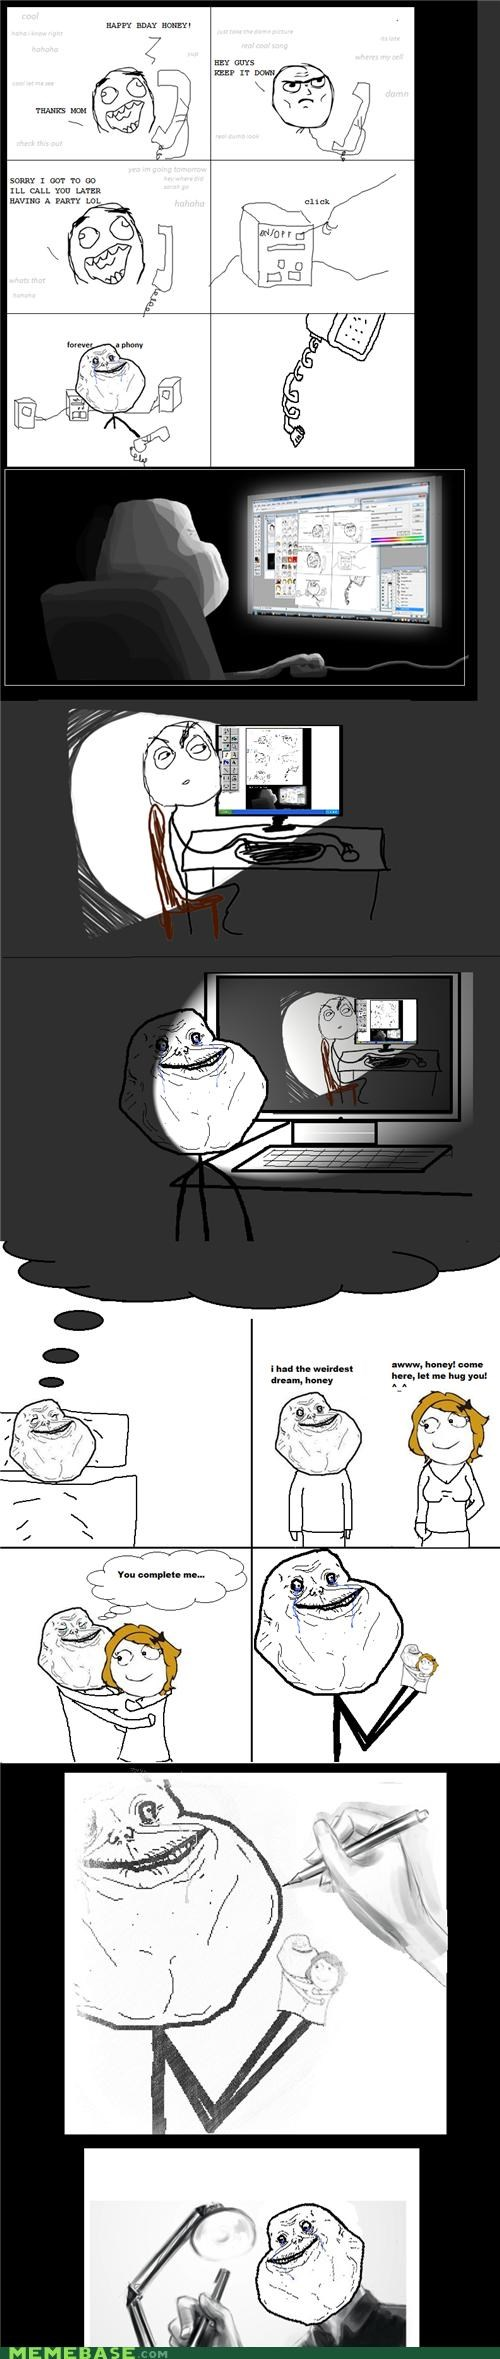 comics,dreams,forever alone,Inception,layers